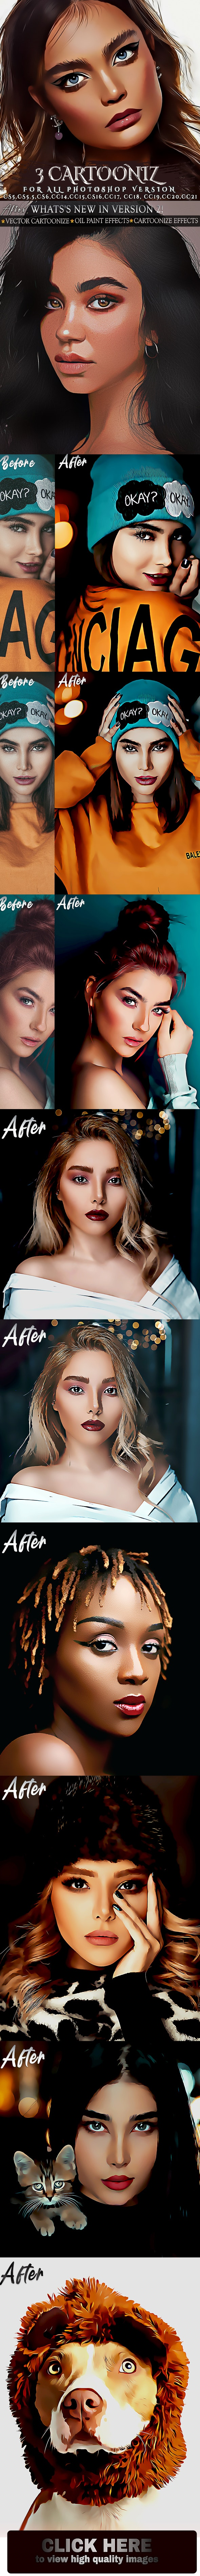 Vector Cartoon painting Photoshop Action - Photo Effects Actions